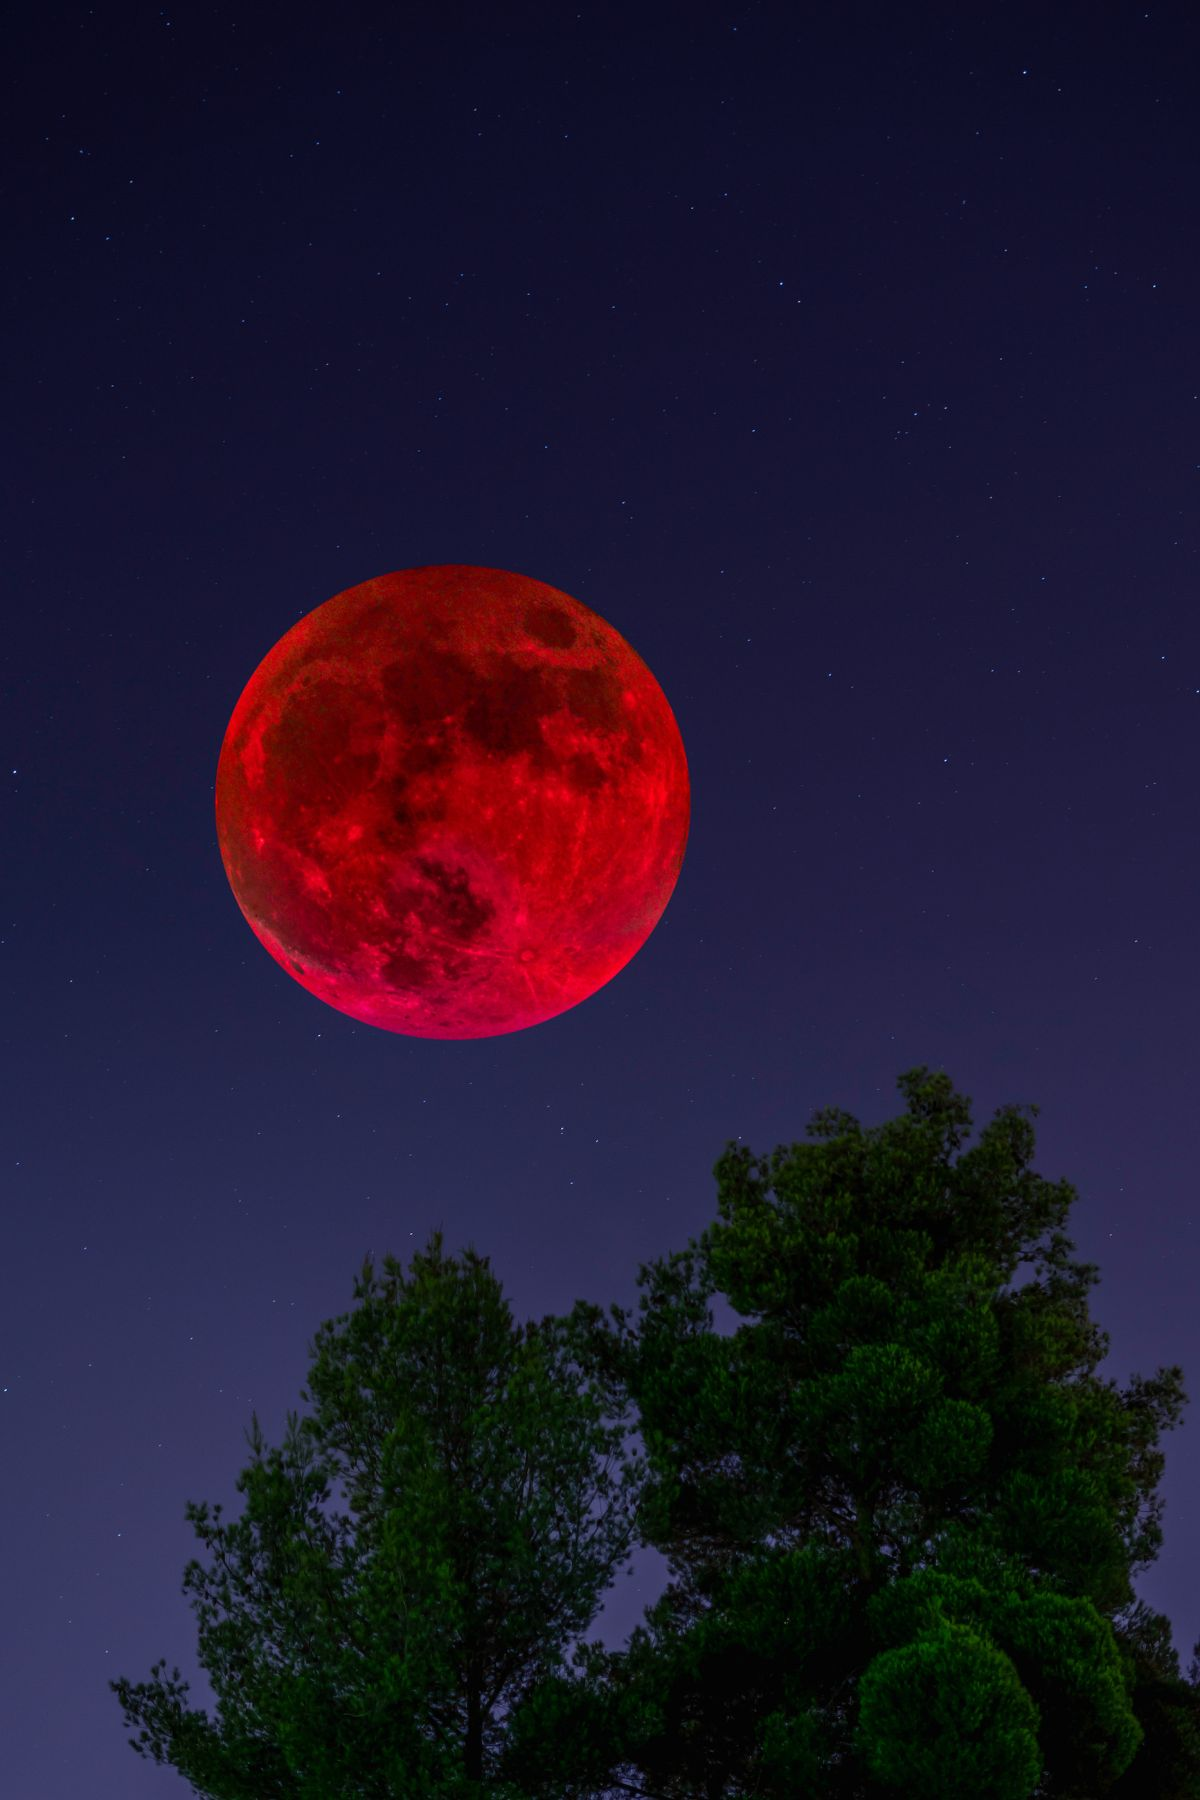 Blood Moon 2019: How to photograph the total lunar eclipse on 20-21